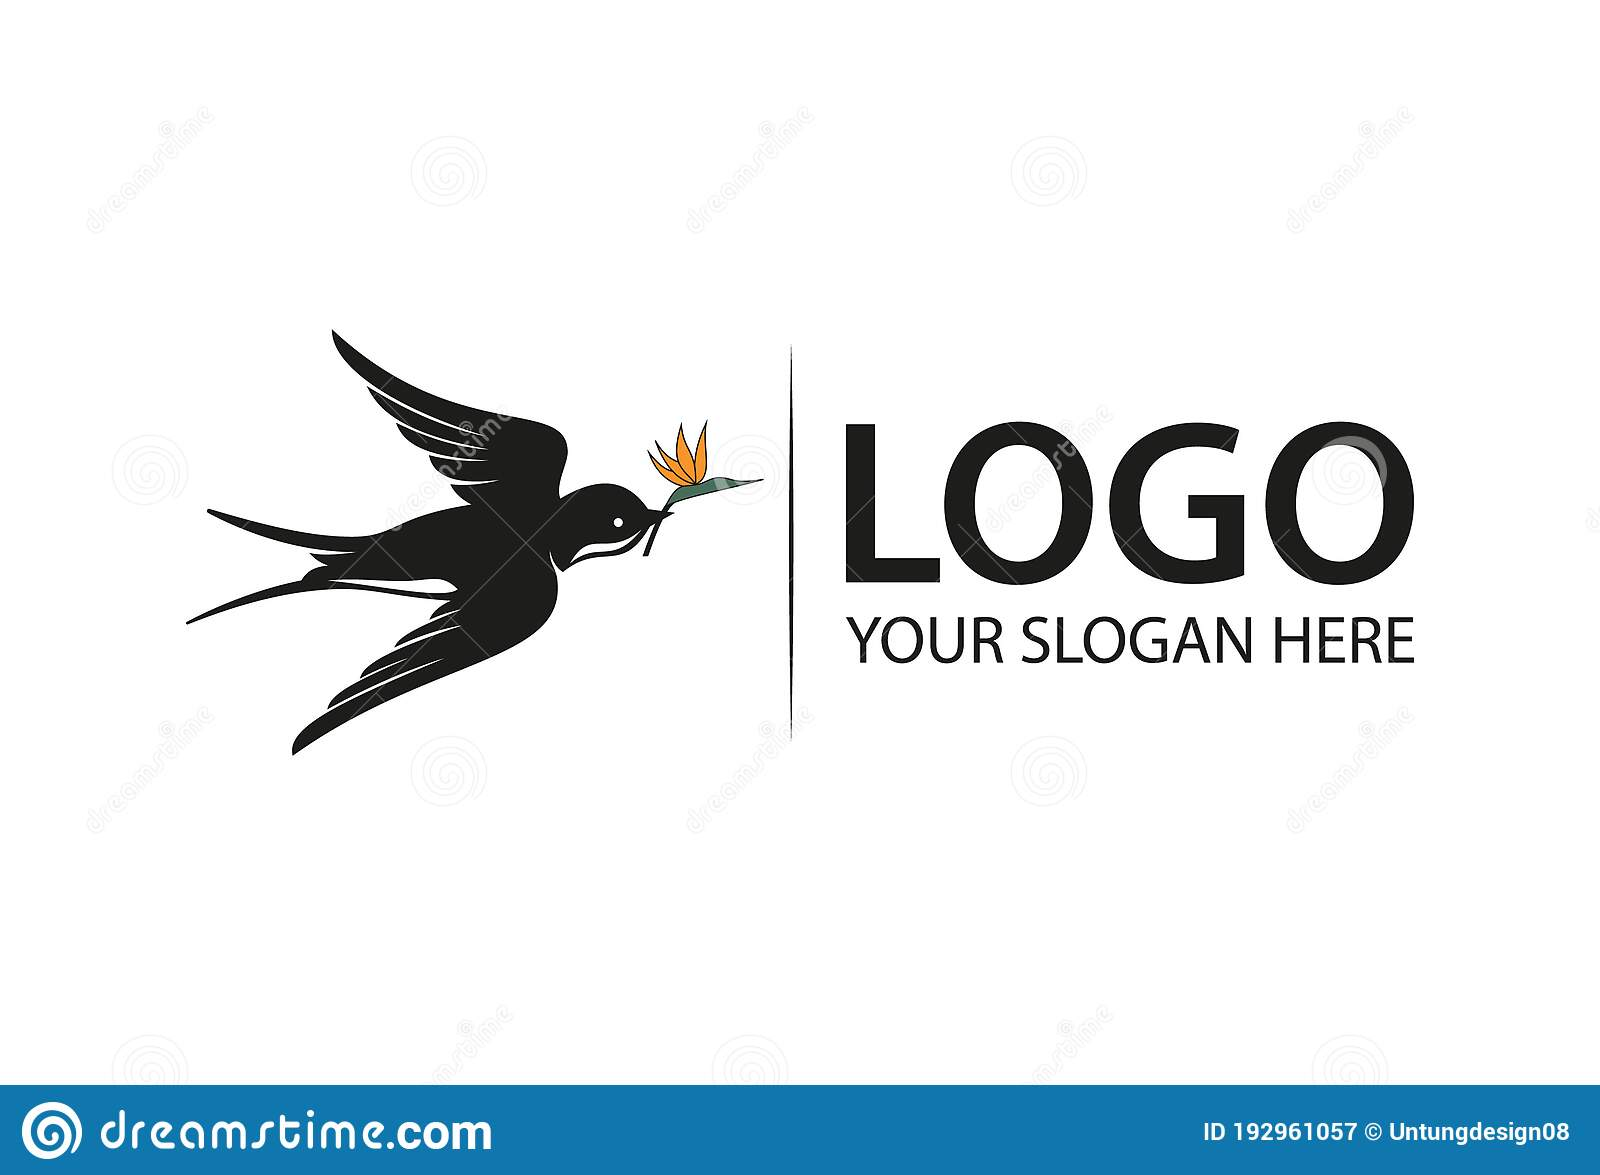 black swallow bird with outspread wings and tail logo design stock vector illustration of black icon 192961057 black swallow bird with outspread wings and tail logo design stock vector illustration of black icon 192961057